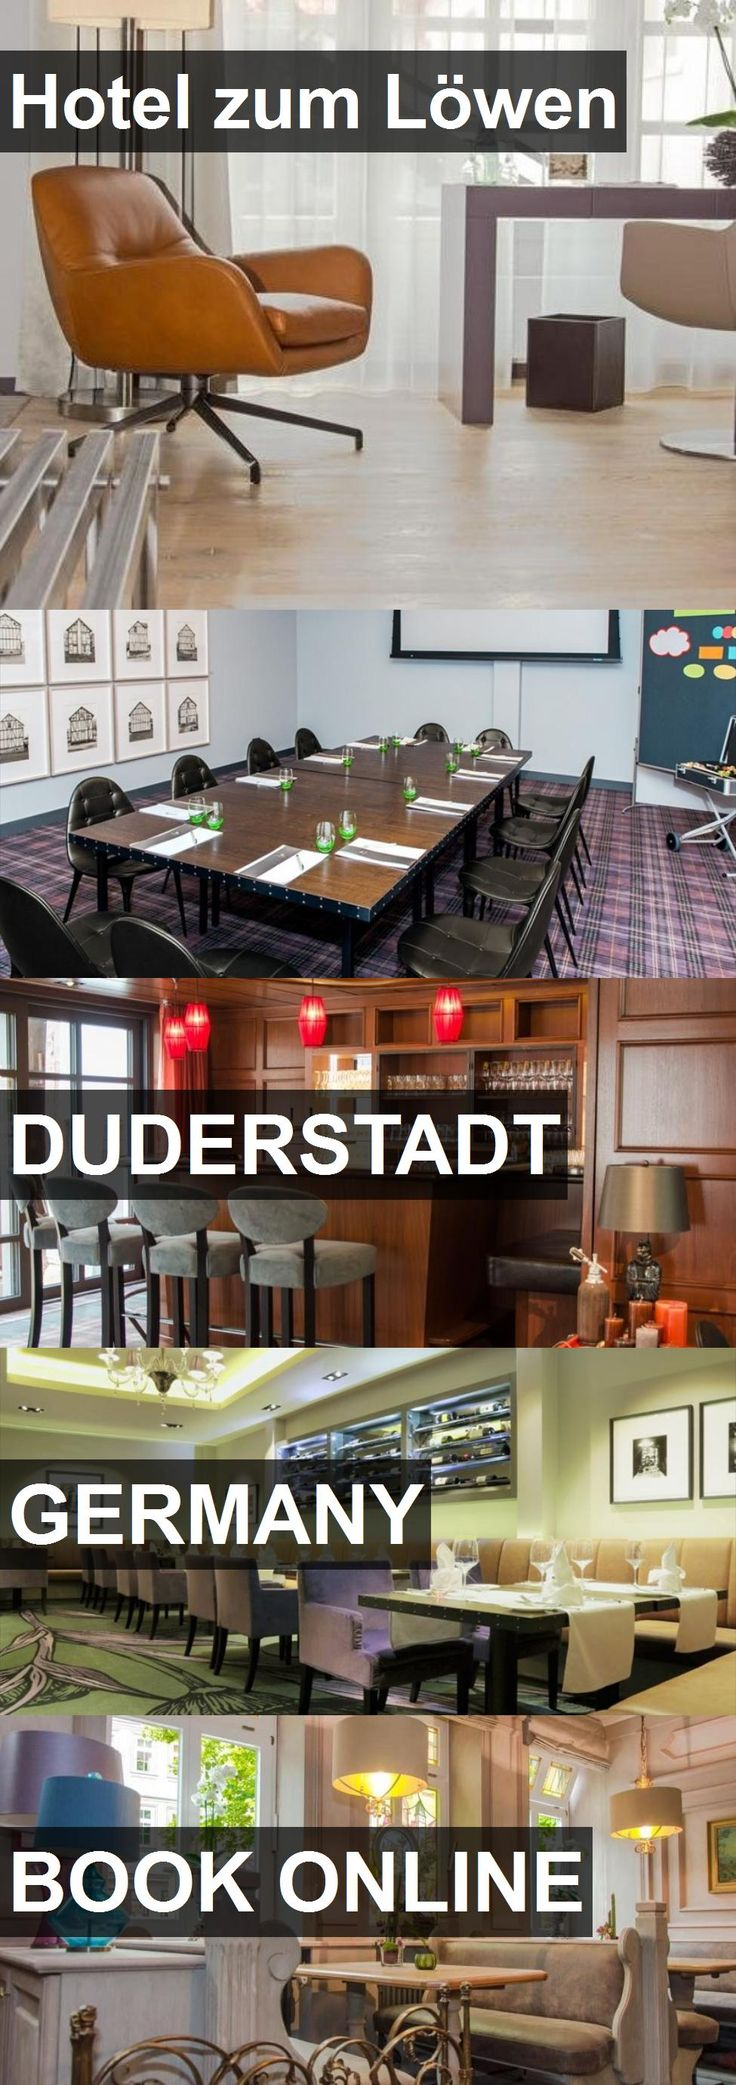 Hotel zum Löwen in Duderstadt, Germany. For more information, photos, reviews and best prices please follow the link. #Germany #Duderstadt #travel #vacation #hotel